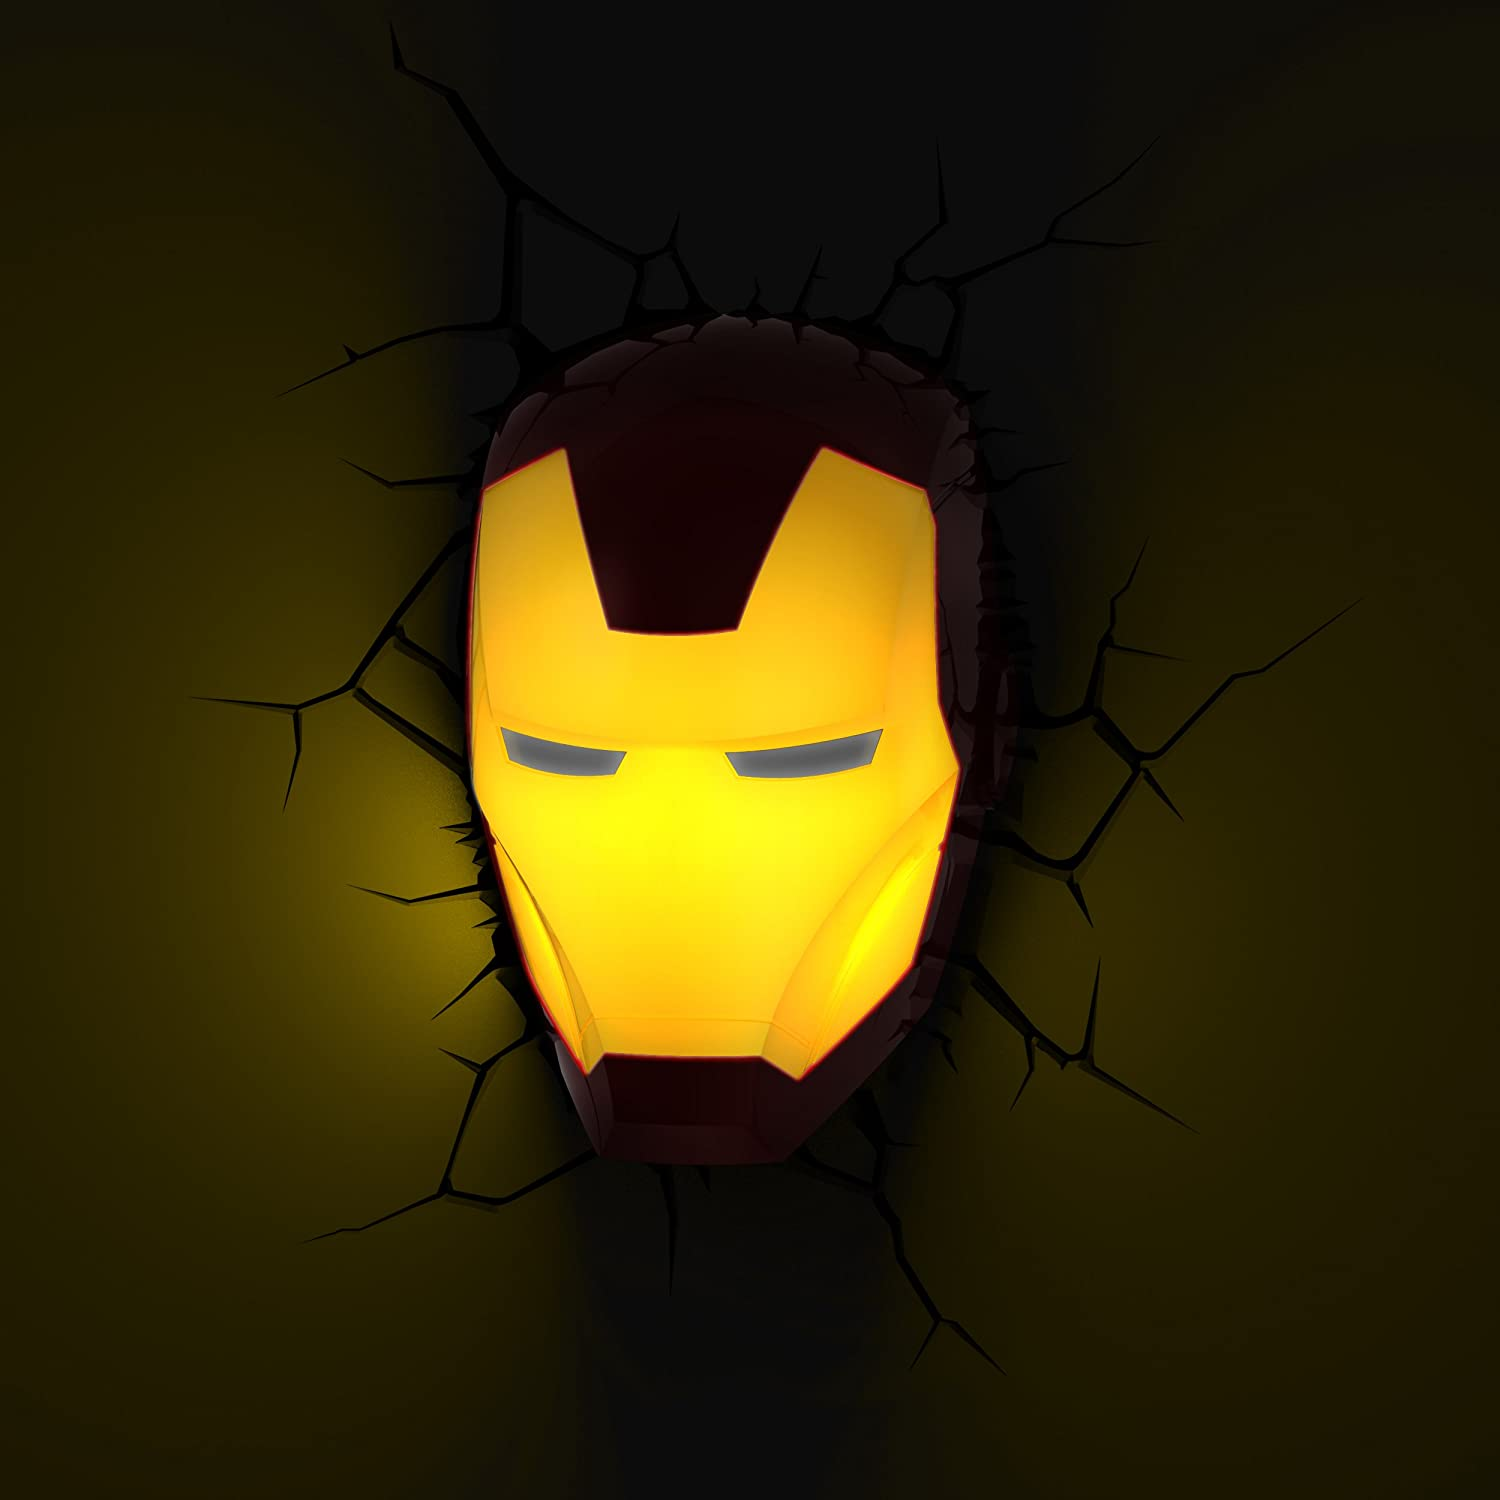 Amazon.com: 3D Light FX Marvel Mini 3D Deco Wall LED Night Light ...